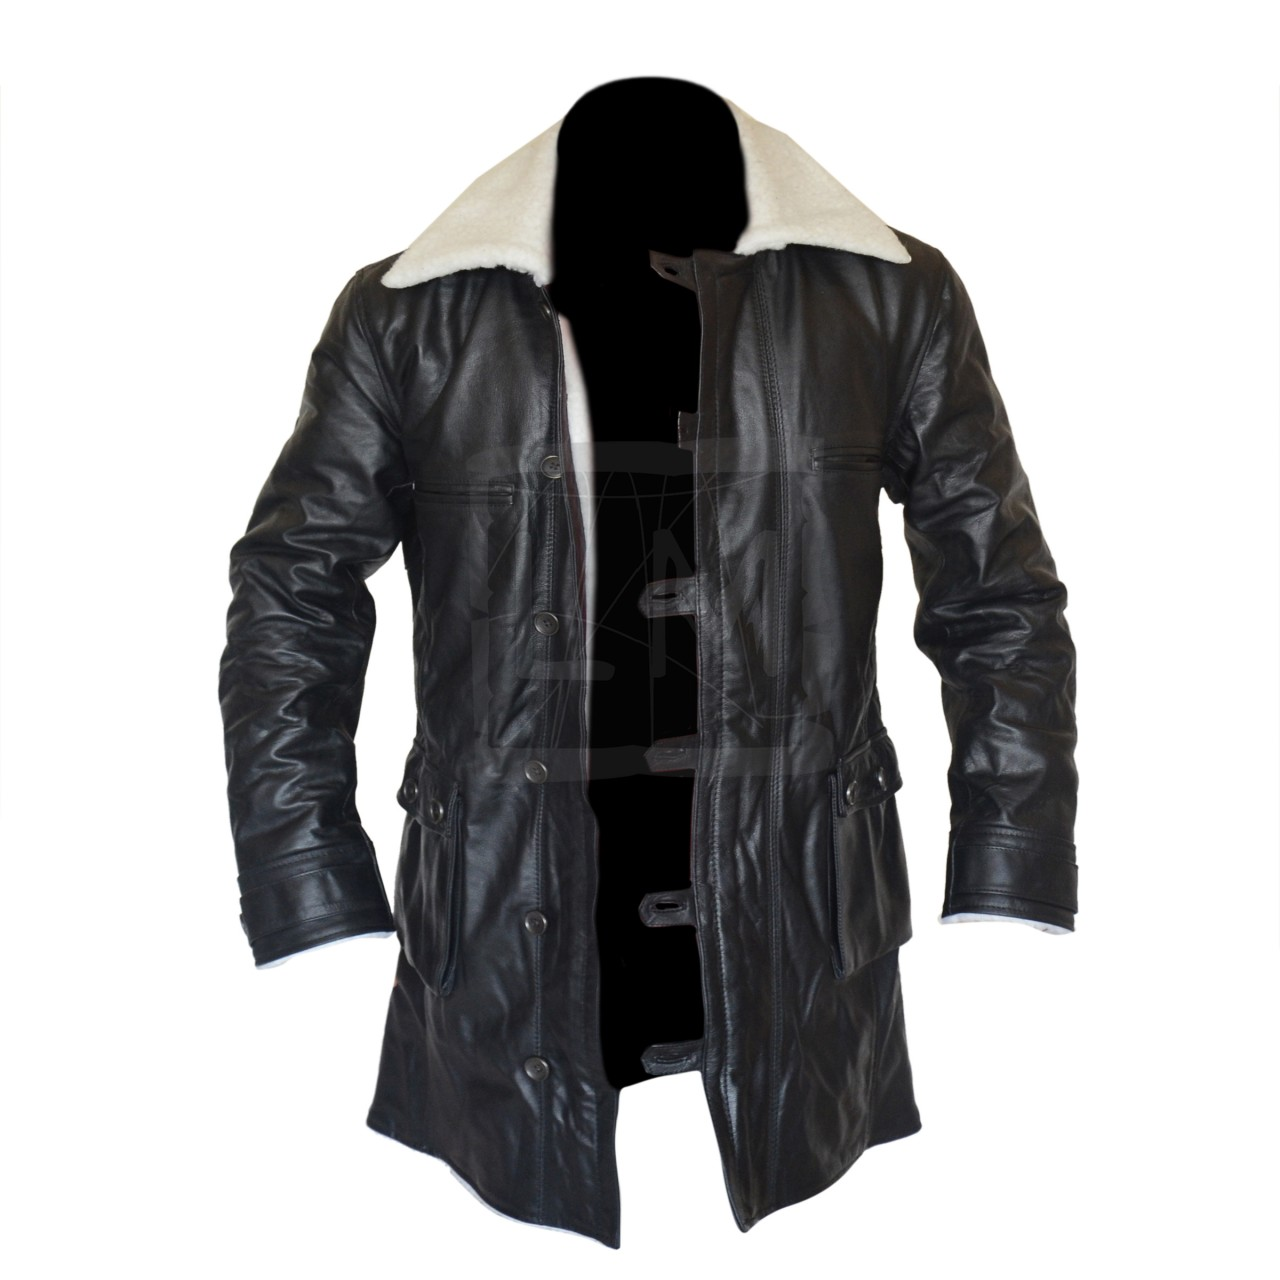 Shop men's designer suit jackets & blazers at heresfilmz8.ga From suit vests to dressy blazers and jackets, you can find ways to dress up or down.